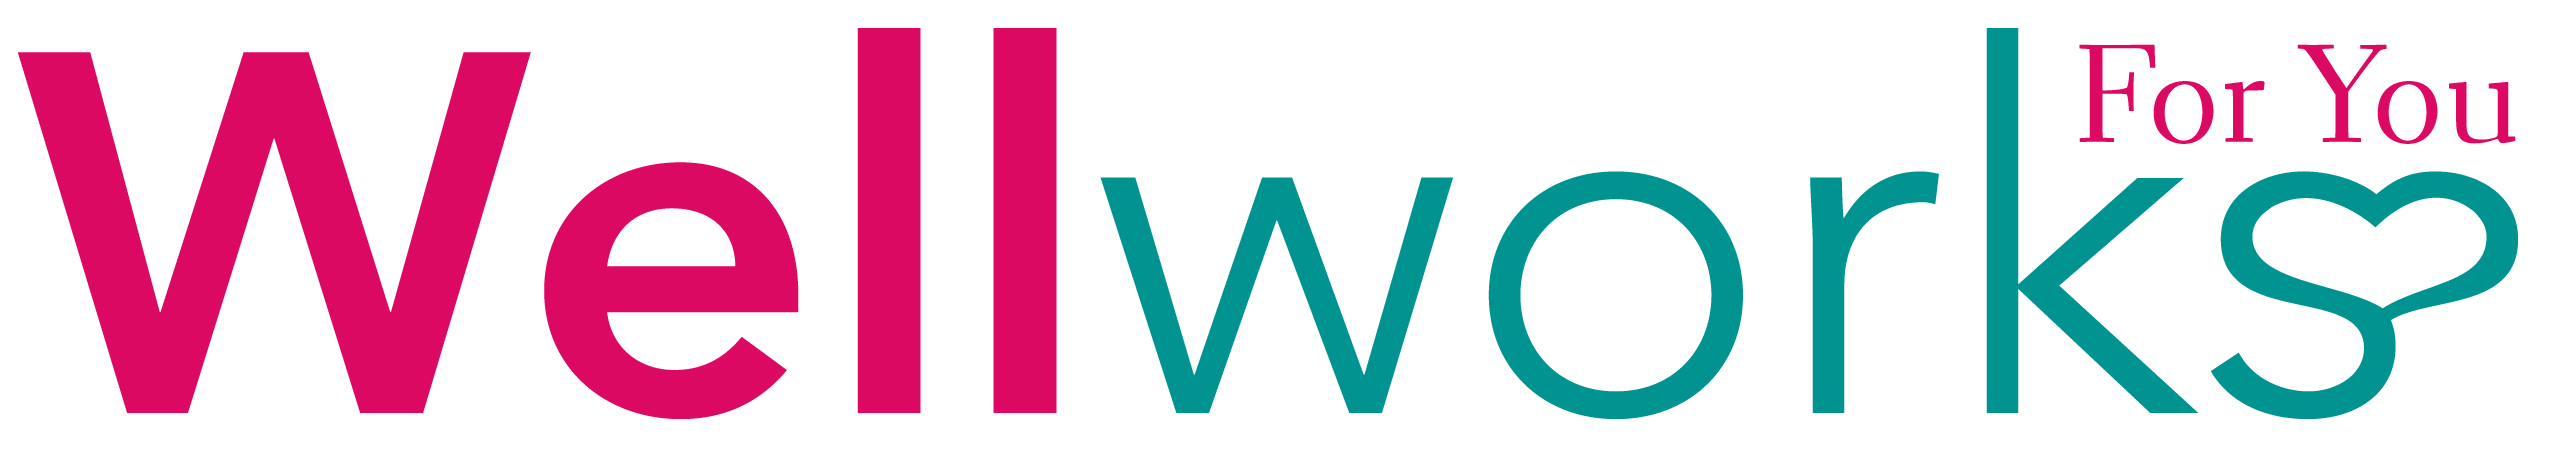 Wellworks For You